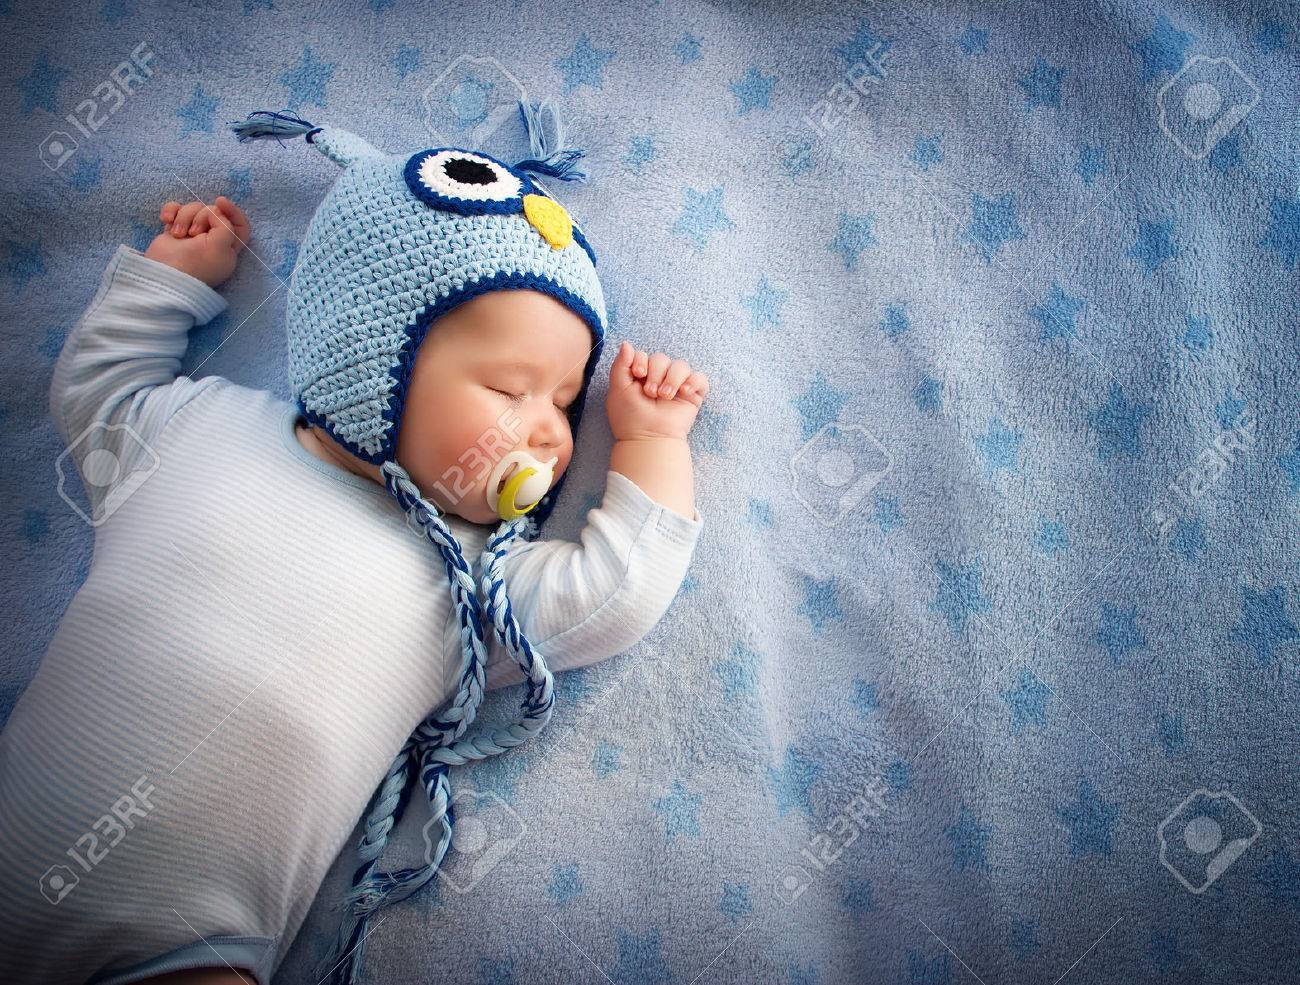 4 month old baby in owl hat sleeping on blue blanket Stock Photo - 37732546 cb2d07da971